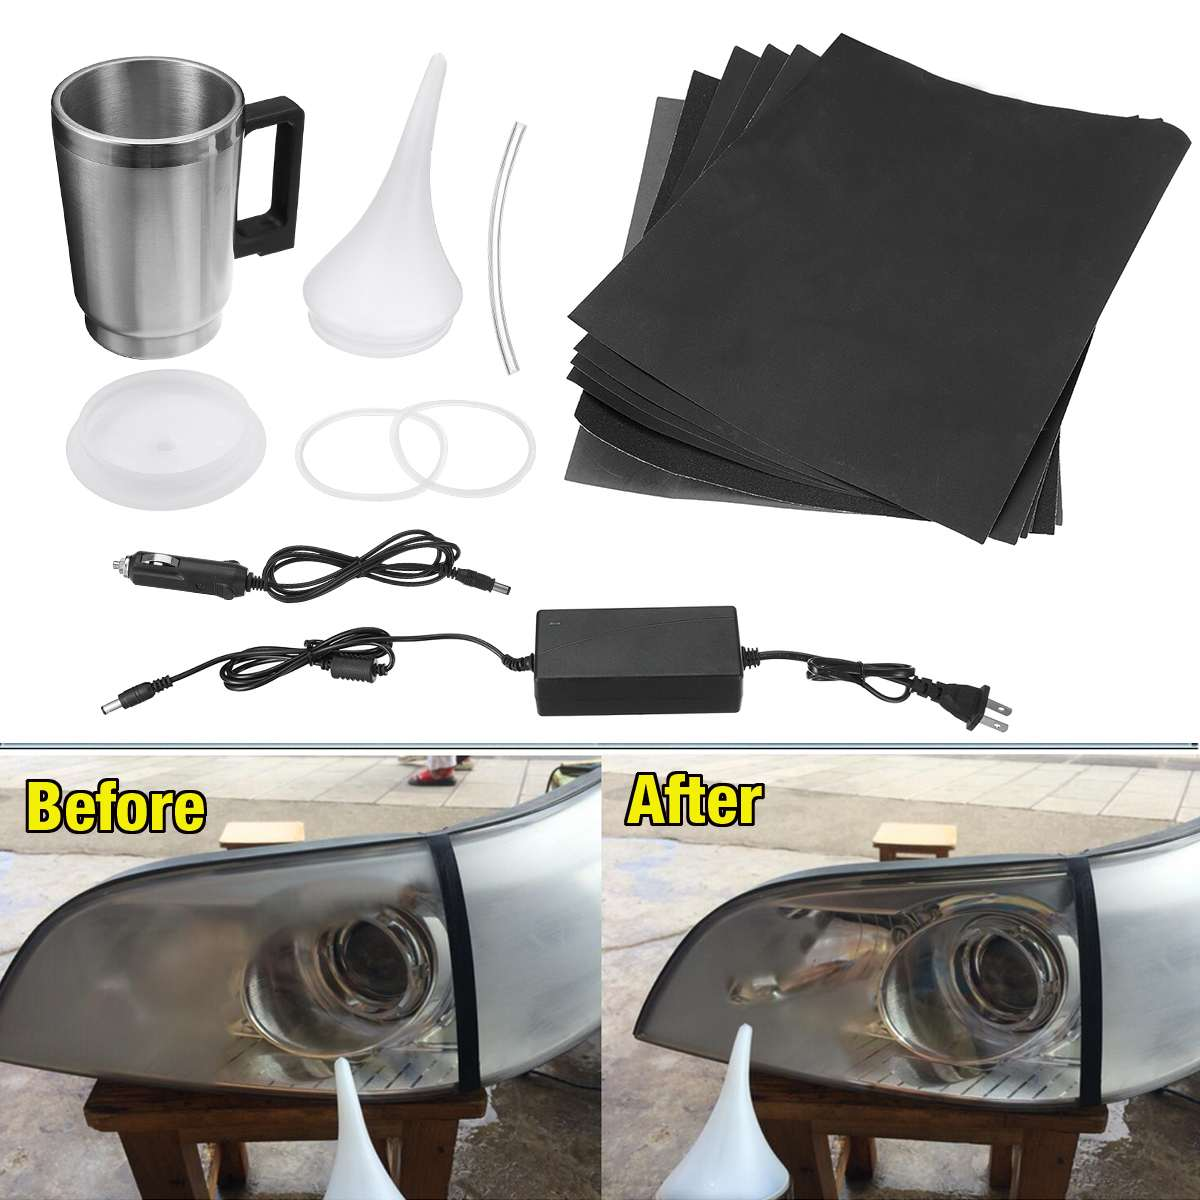 New 2 Styles Cover Car Headlight Refurbished Electrolytic Atomized Cup Headlamp Repair Liquid Repair Tool